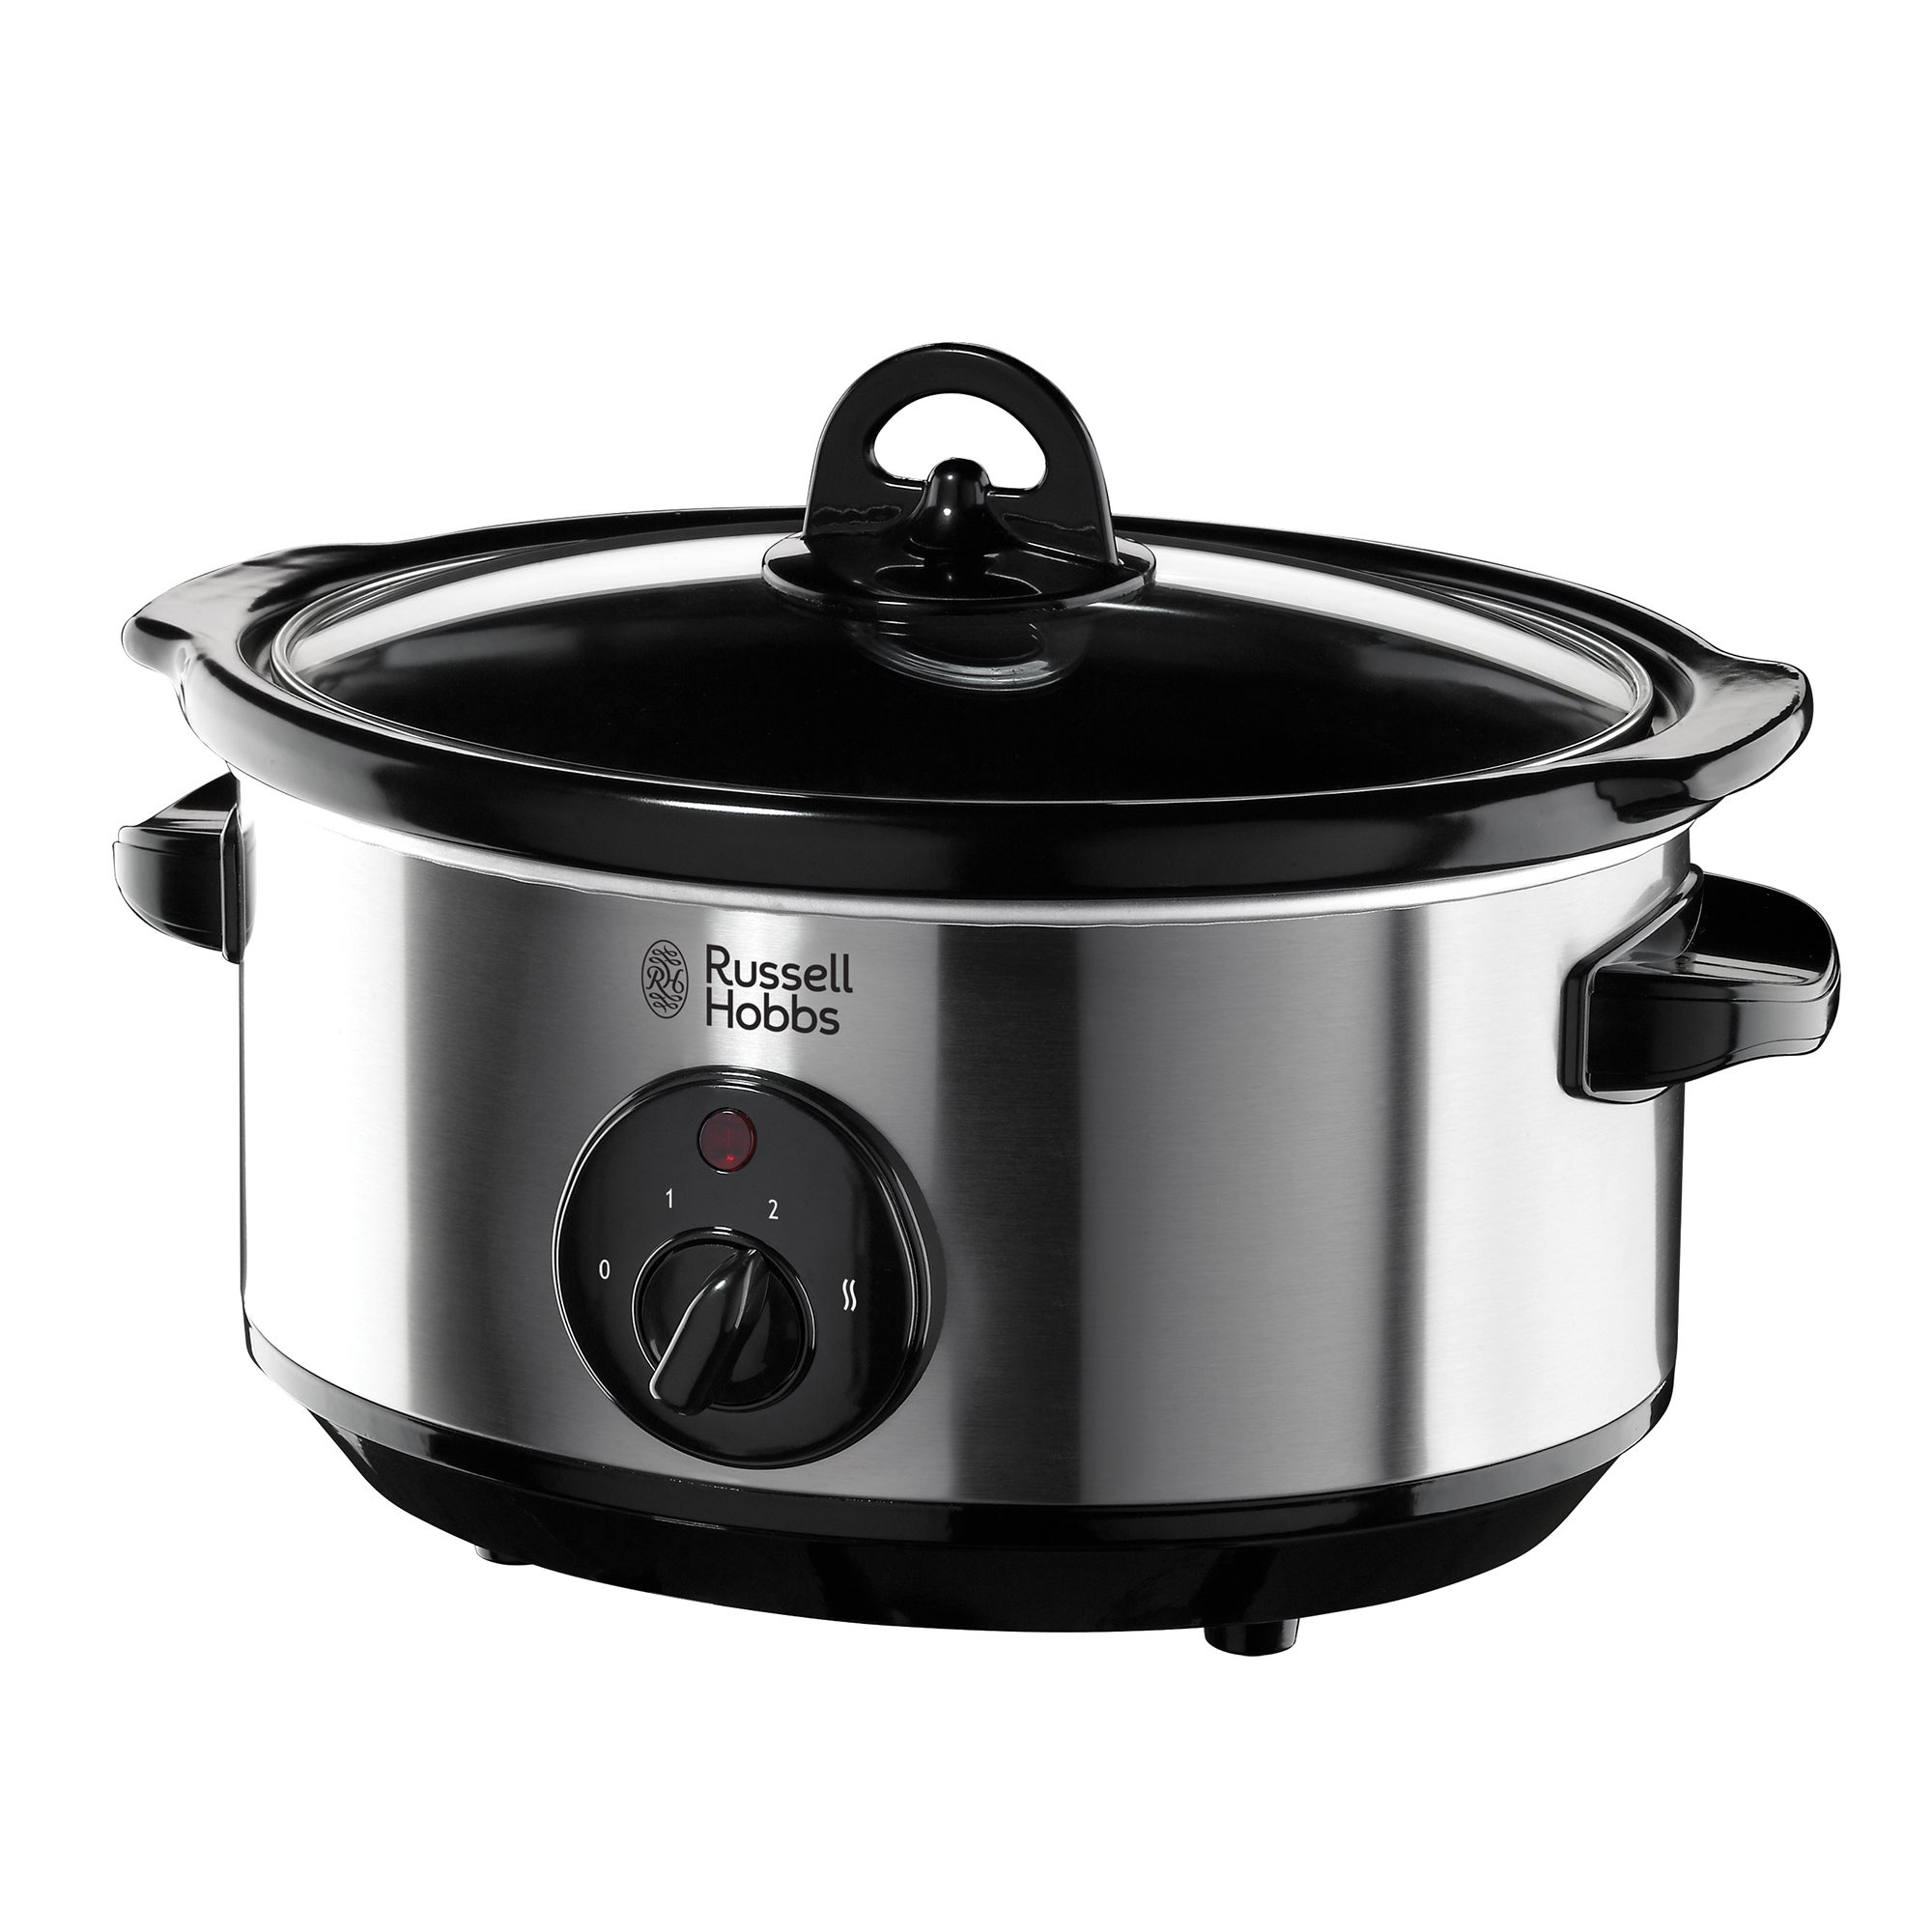 Russell Hobbs 19790 Stainless Steel Silver Slow Cooker